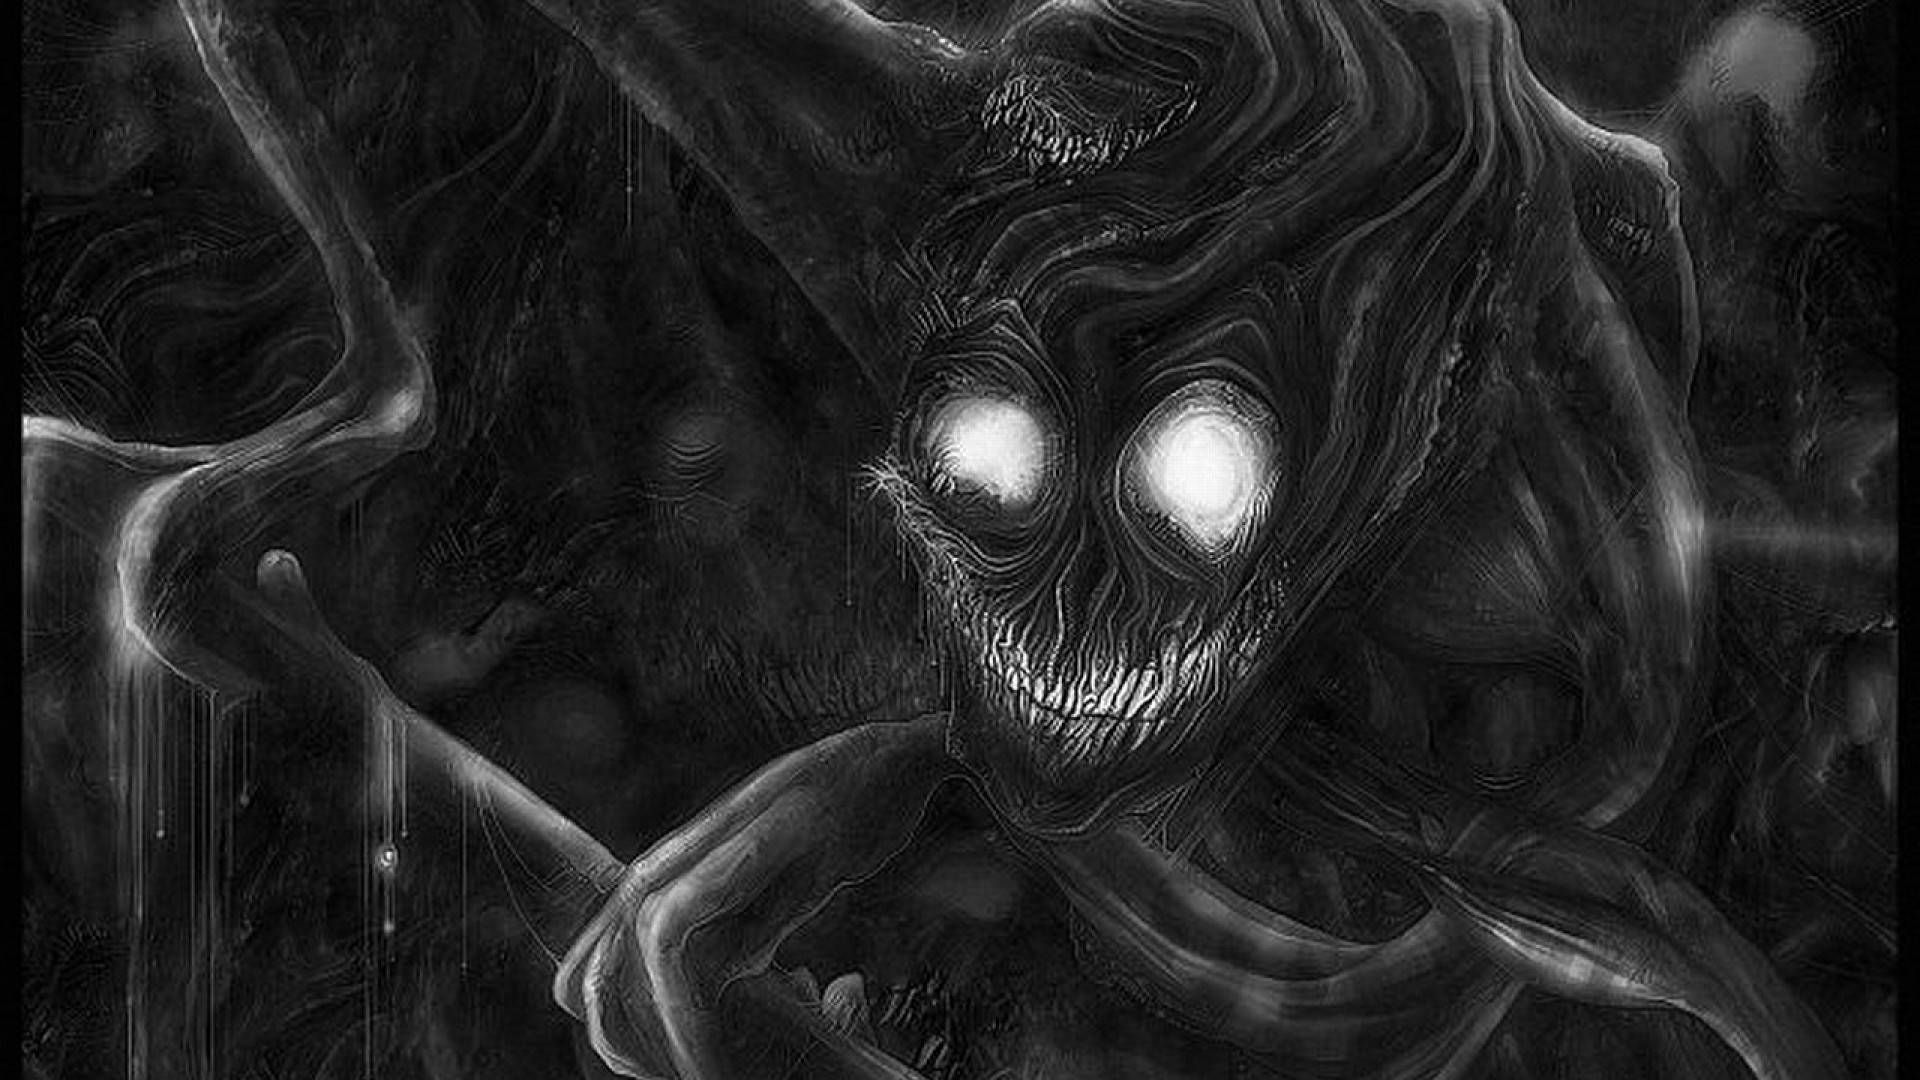 new scary wallpapers dark horror hd backgrounds the art